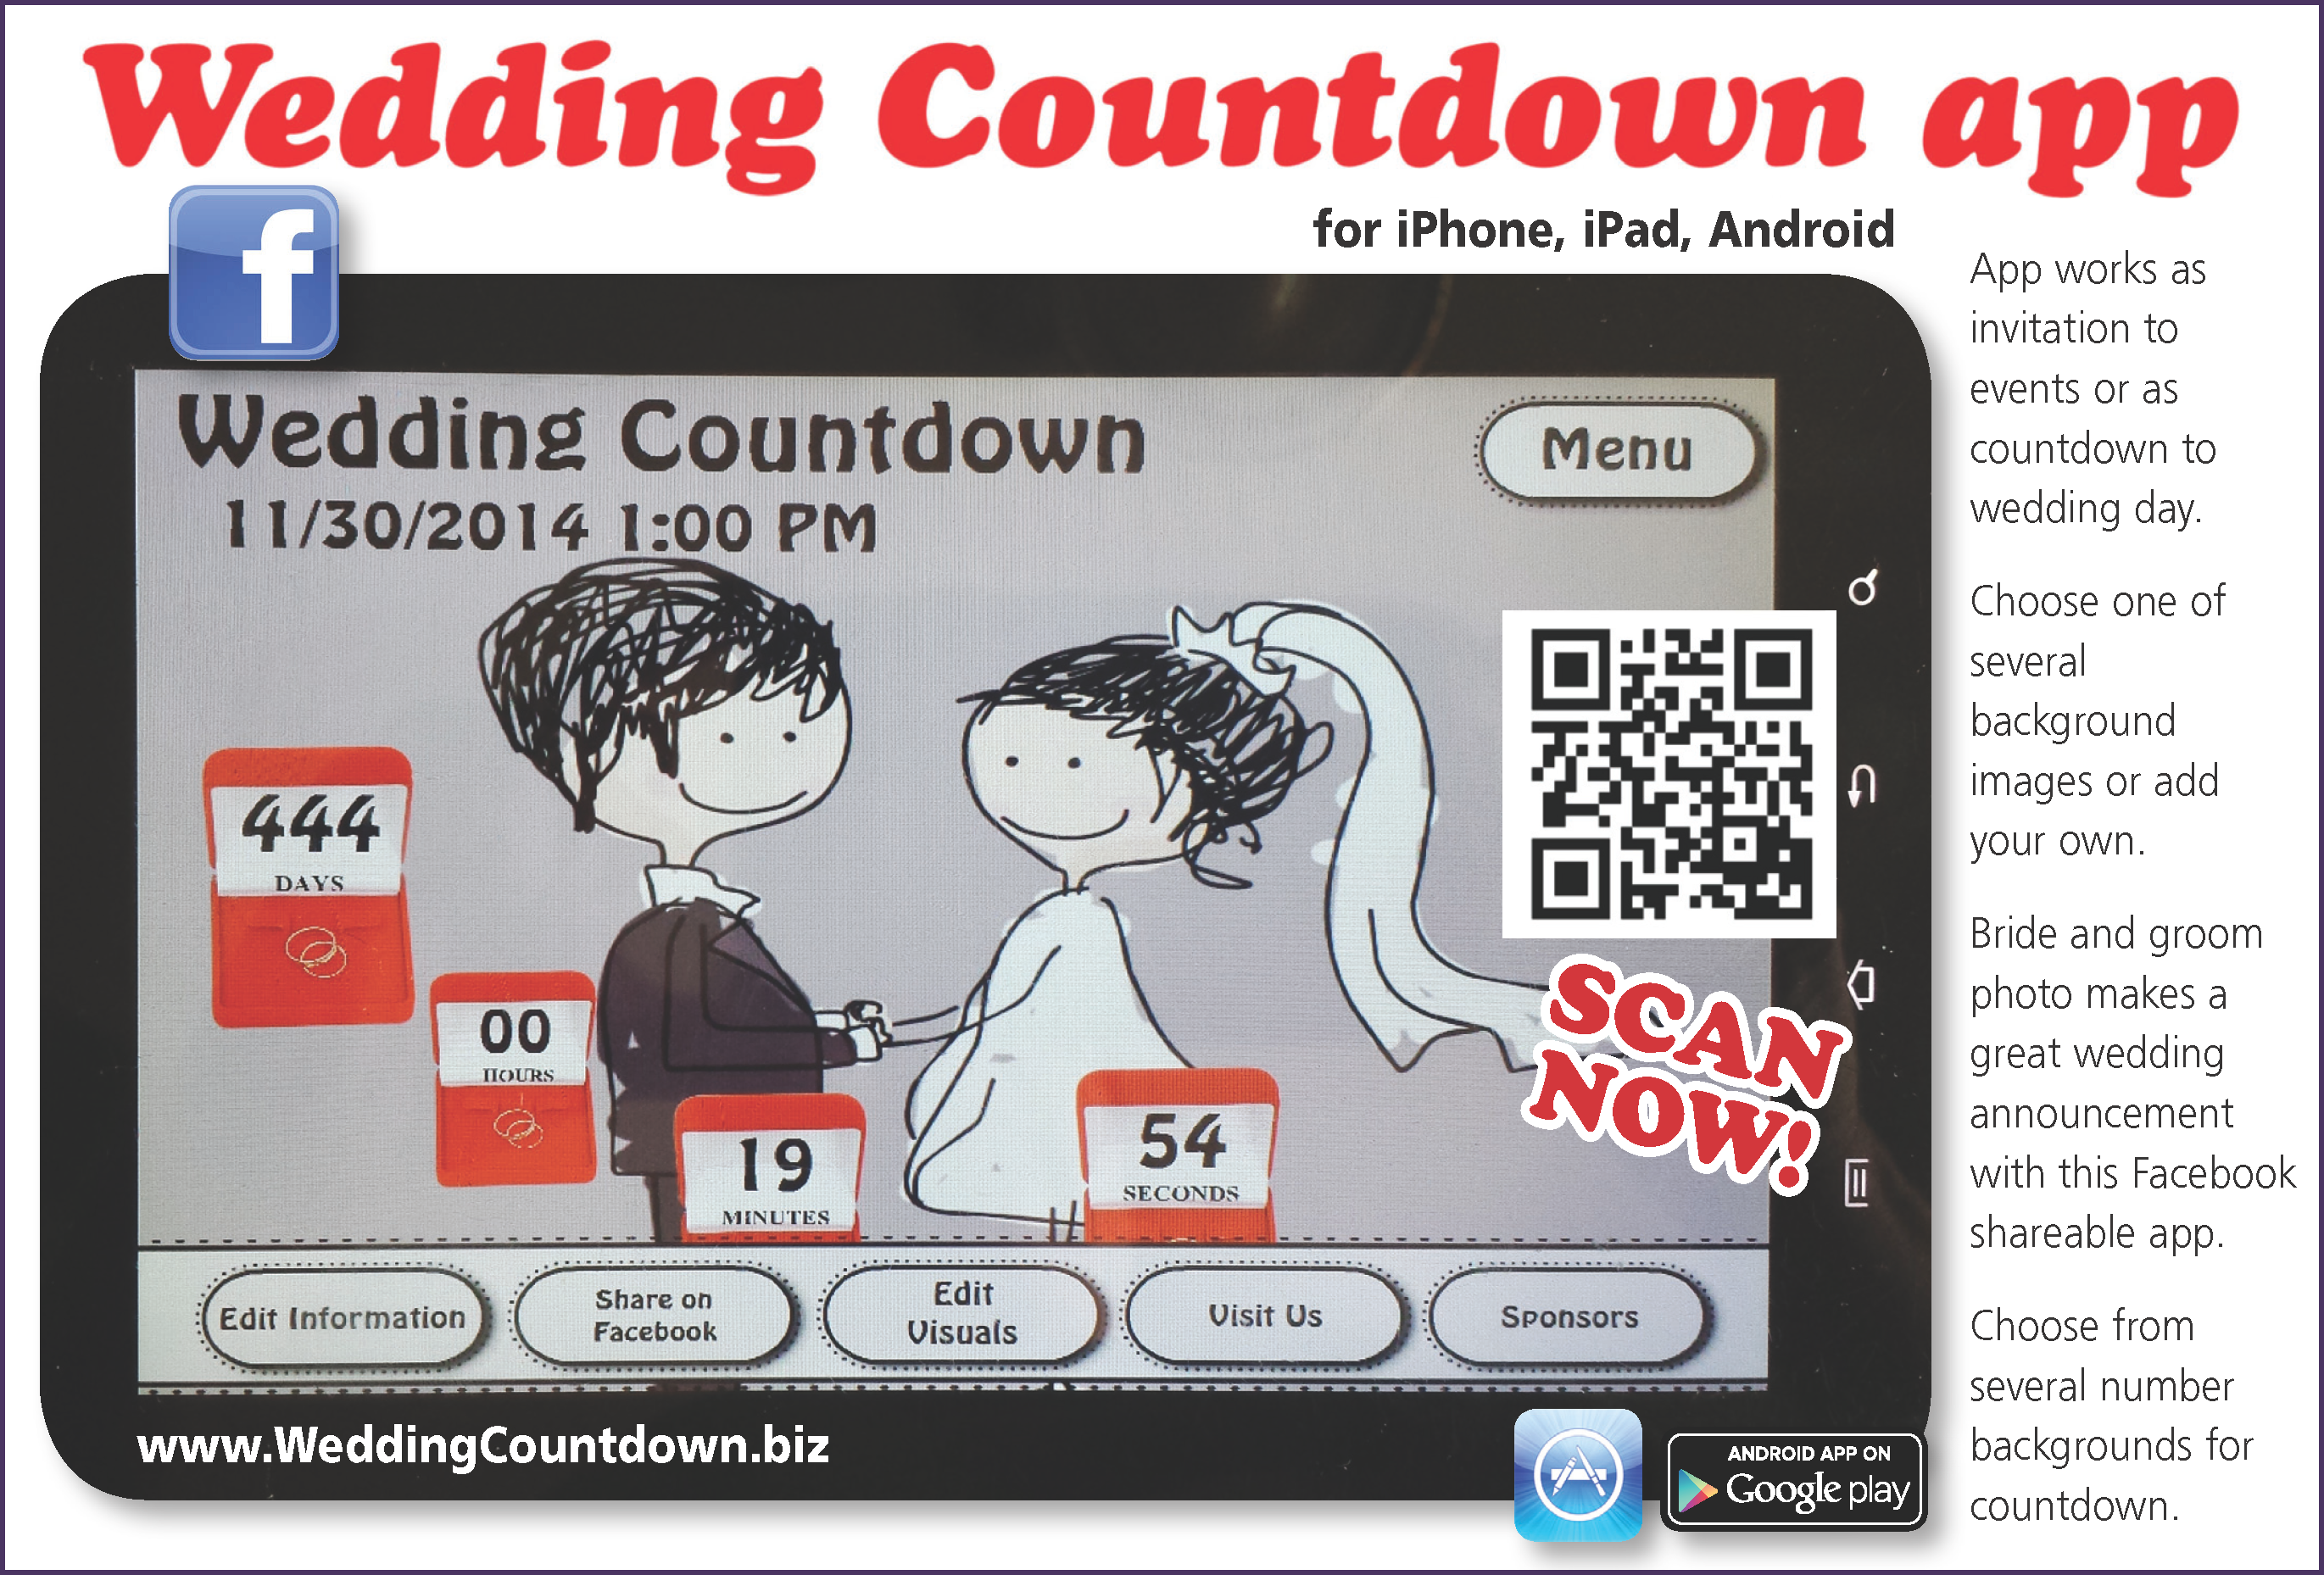 Countdown App For Iphone Ipad Android Https Play Google Com Store Apps Details Id Air Wedding Countdown Digital Wedding Invitations Wedding Reception Menu